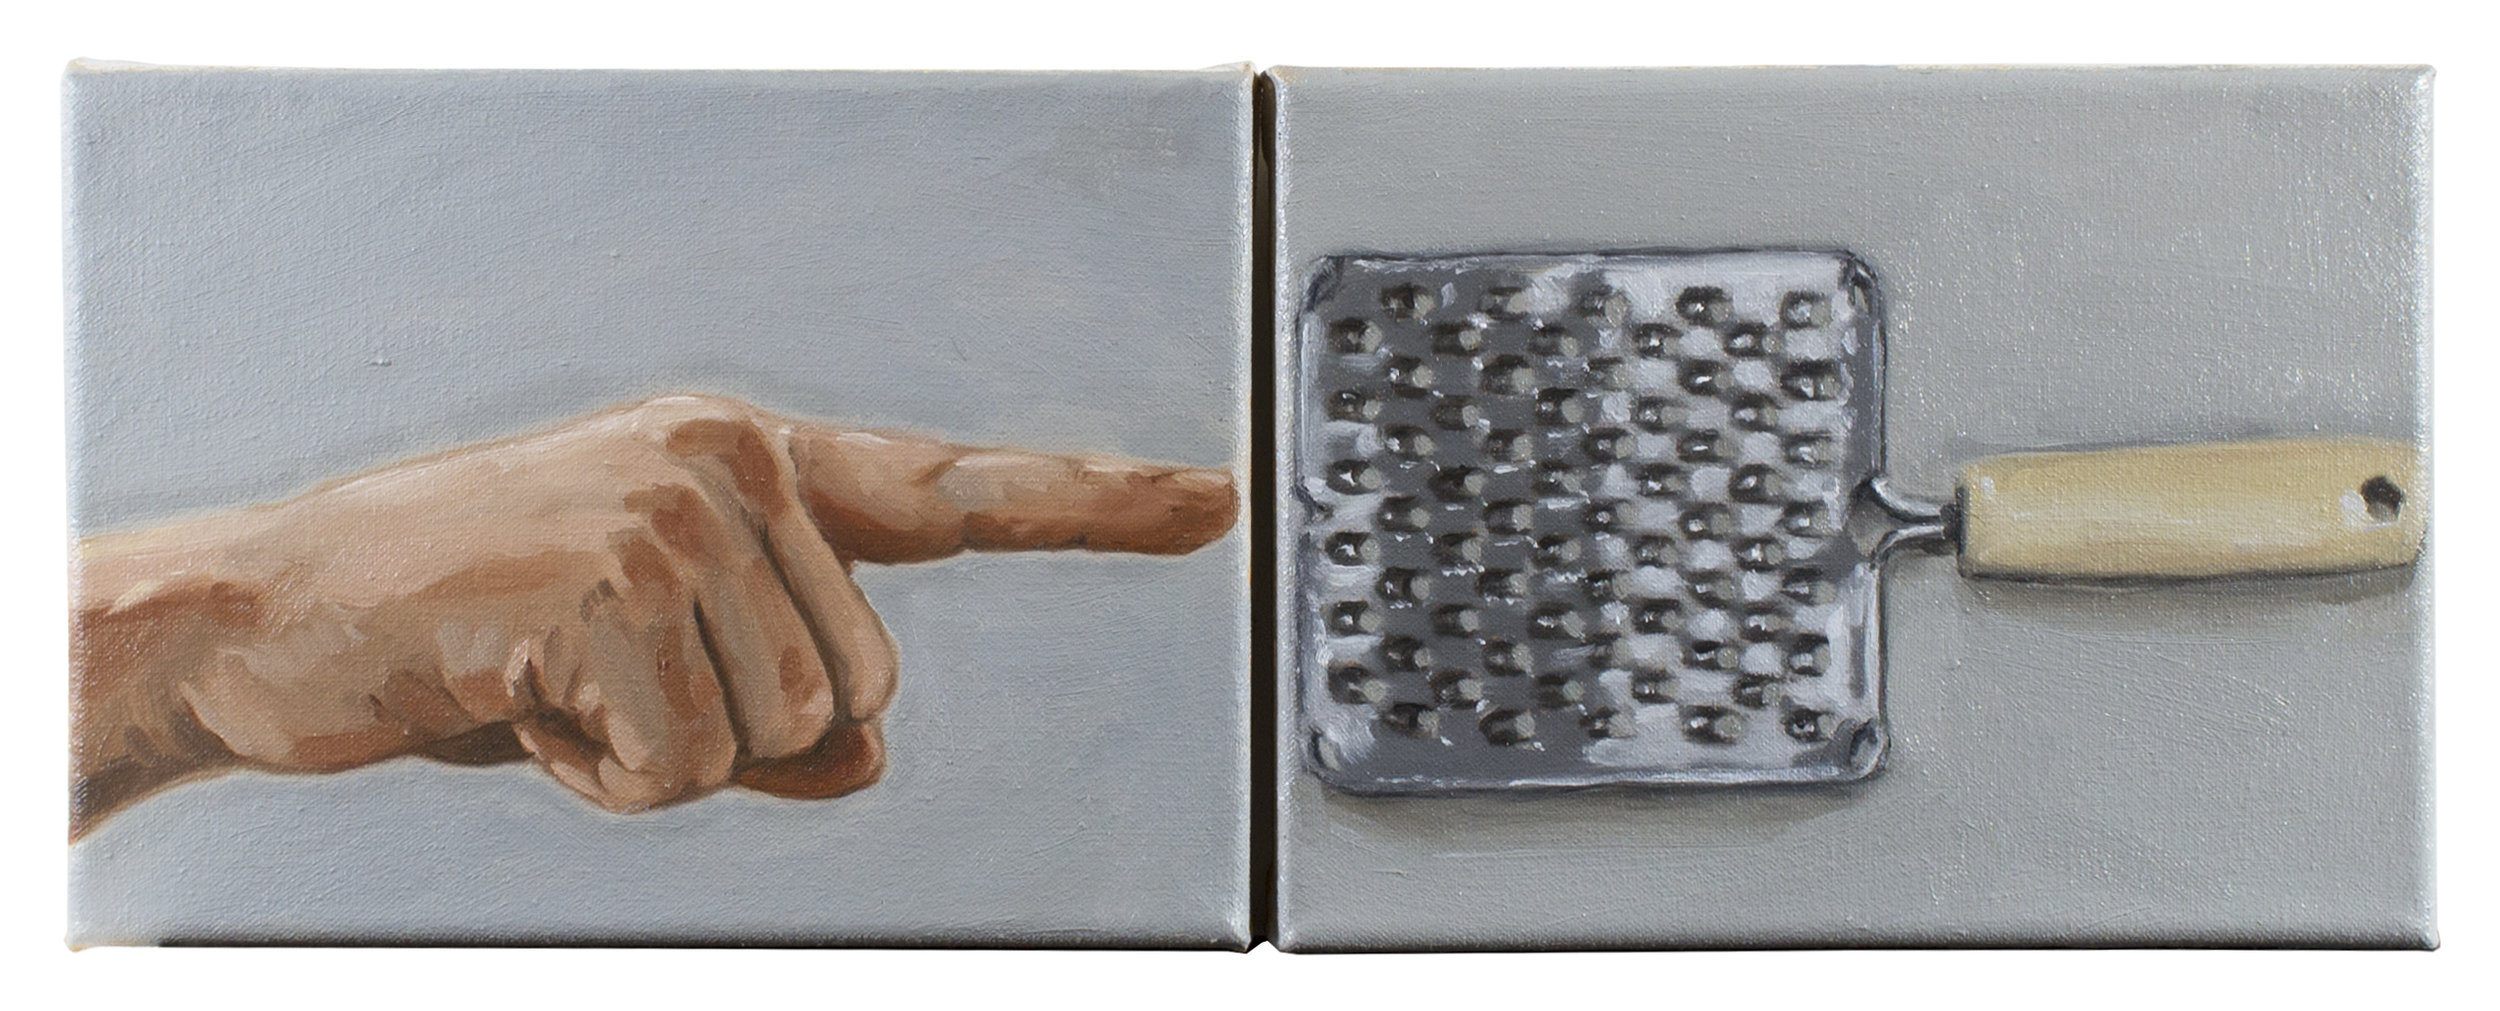 Hand/Grater